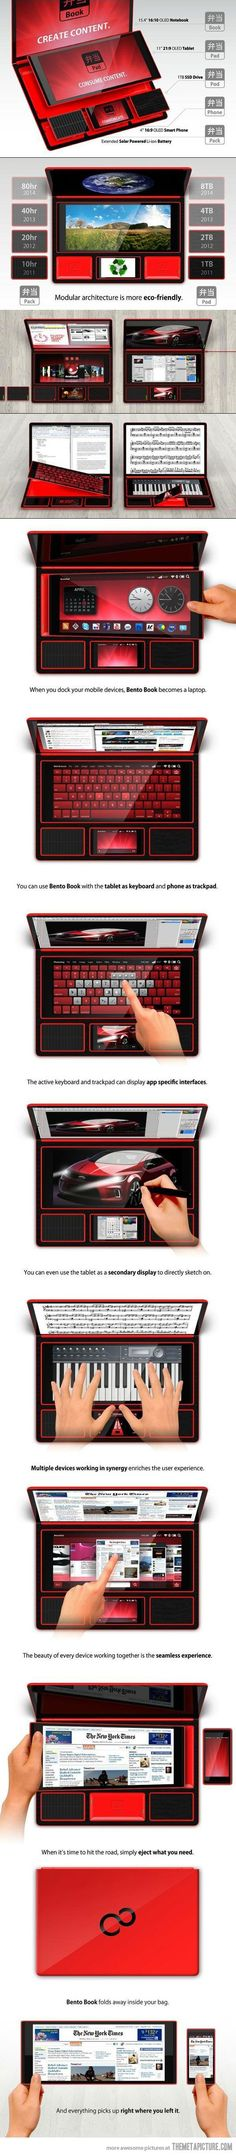 Futuristic computer design - WANT!